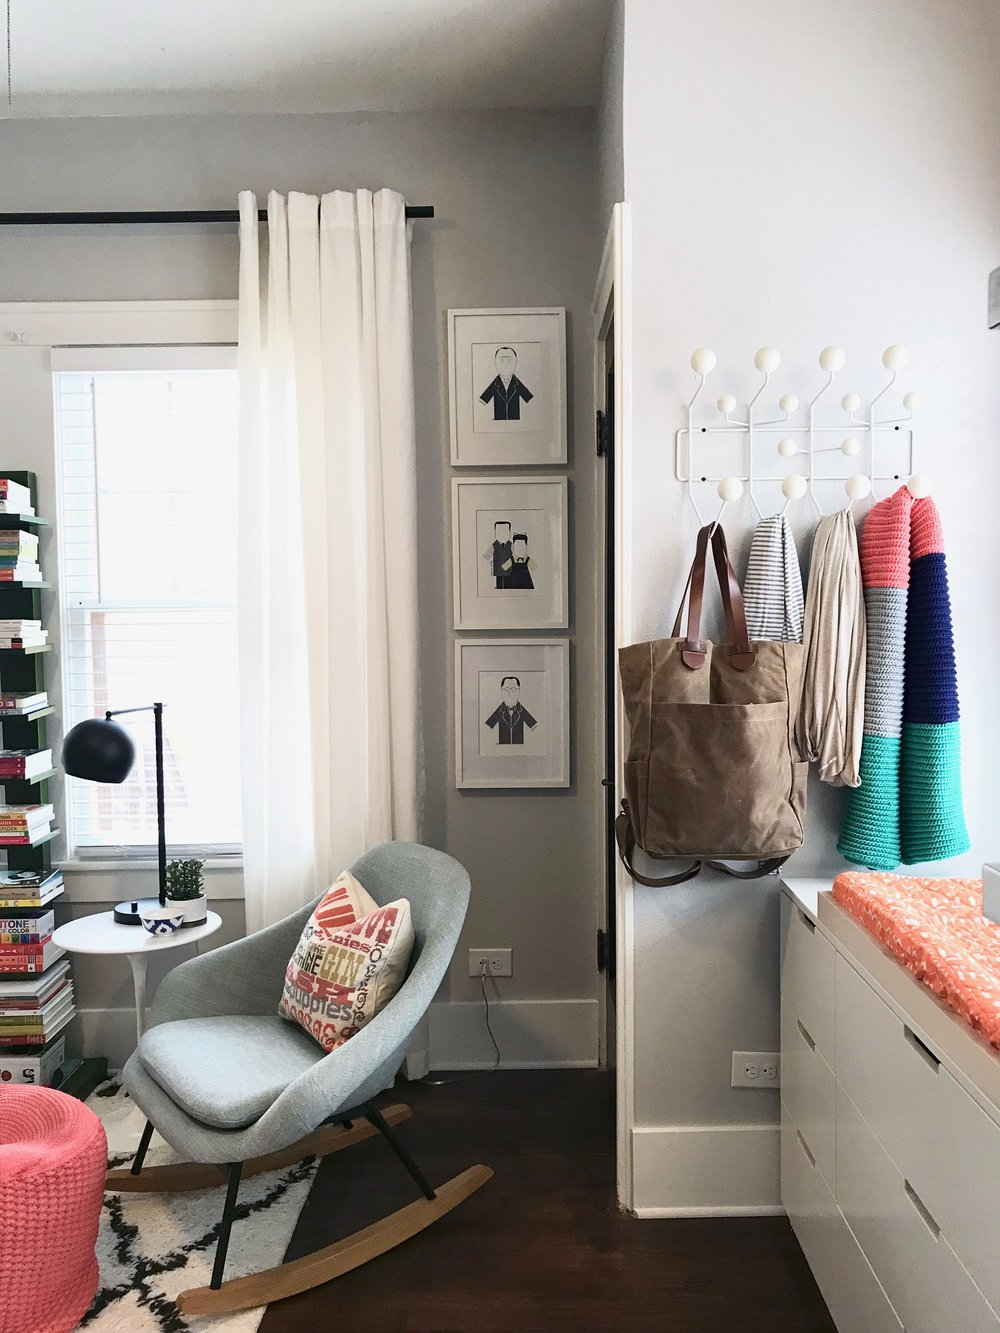 lamp  |  rocker  |  side table  |  rug  | pouf ( similar ) |  plant  | bowl (old Anthro find) | bookshelf ( similar ) |  dresser  |  architect prints  |  hang-it-all  |  solly wraps  |  diaper bag  |  curtains  |  curtain rod  |  changing pad cover